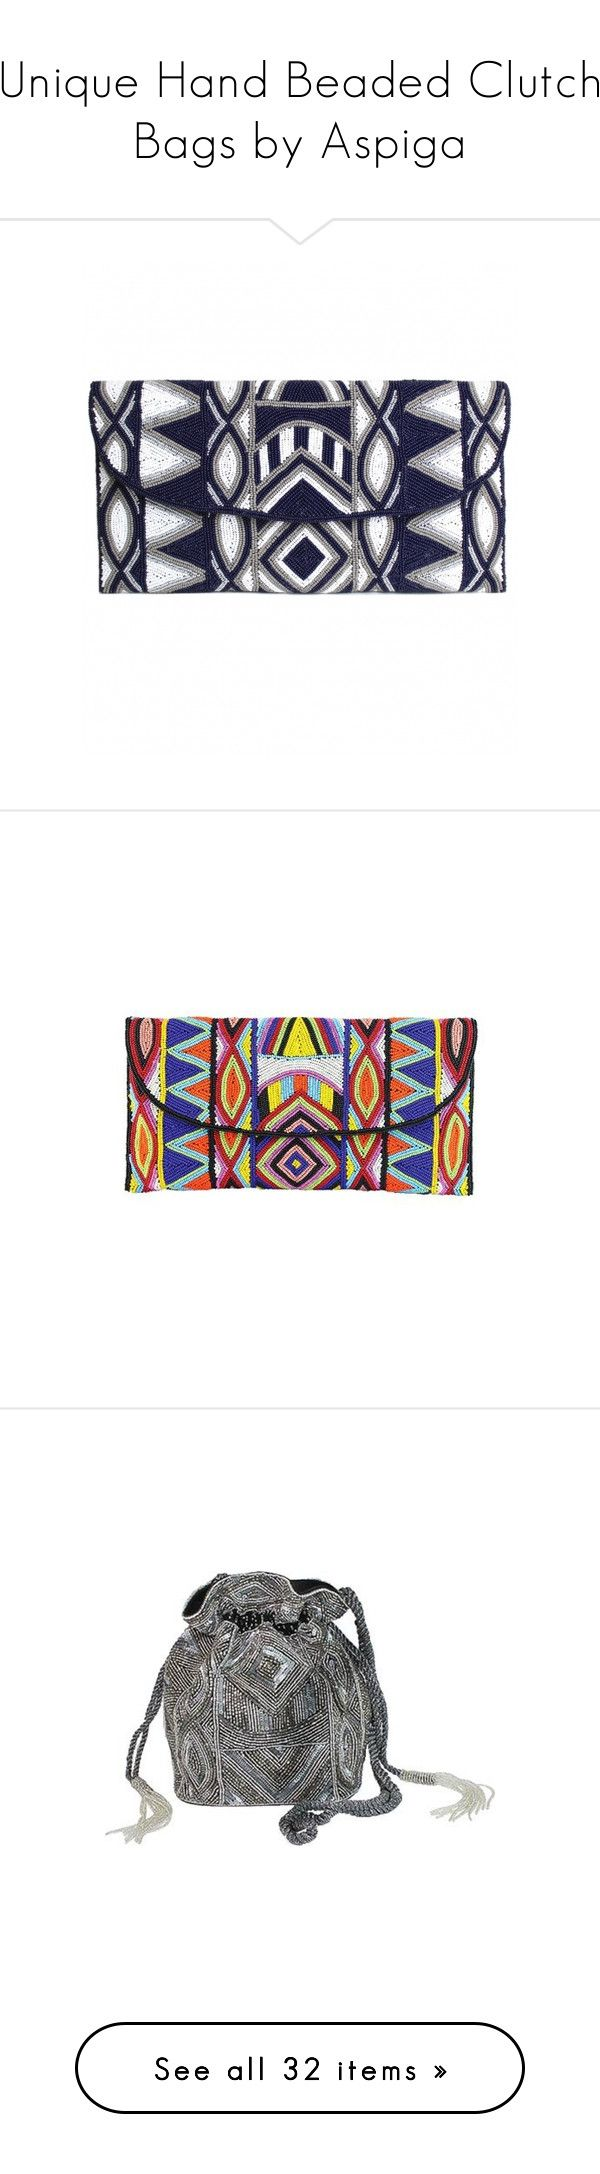 """""""Unique Hand Beaded Clutch Bags by Aspiga"""" by aspigabeach on Polyvore featuring bags, handbags, clutches, blue purse, blue clutches, clasp handbag, white purse, beaded clutches, aspiga and summer purses"""